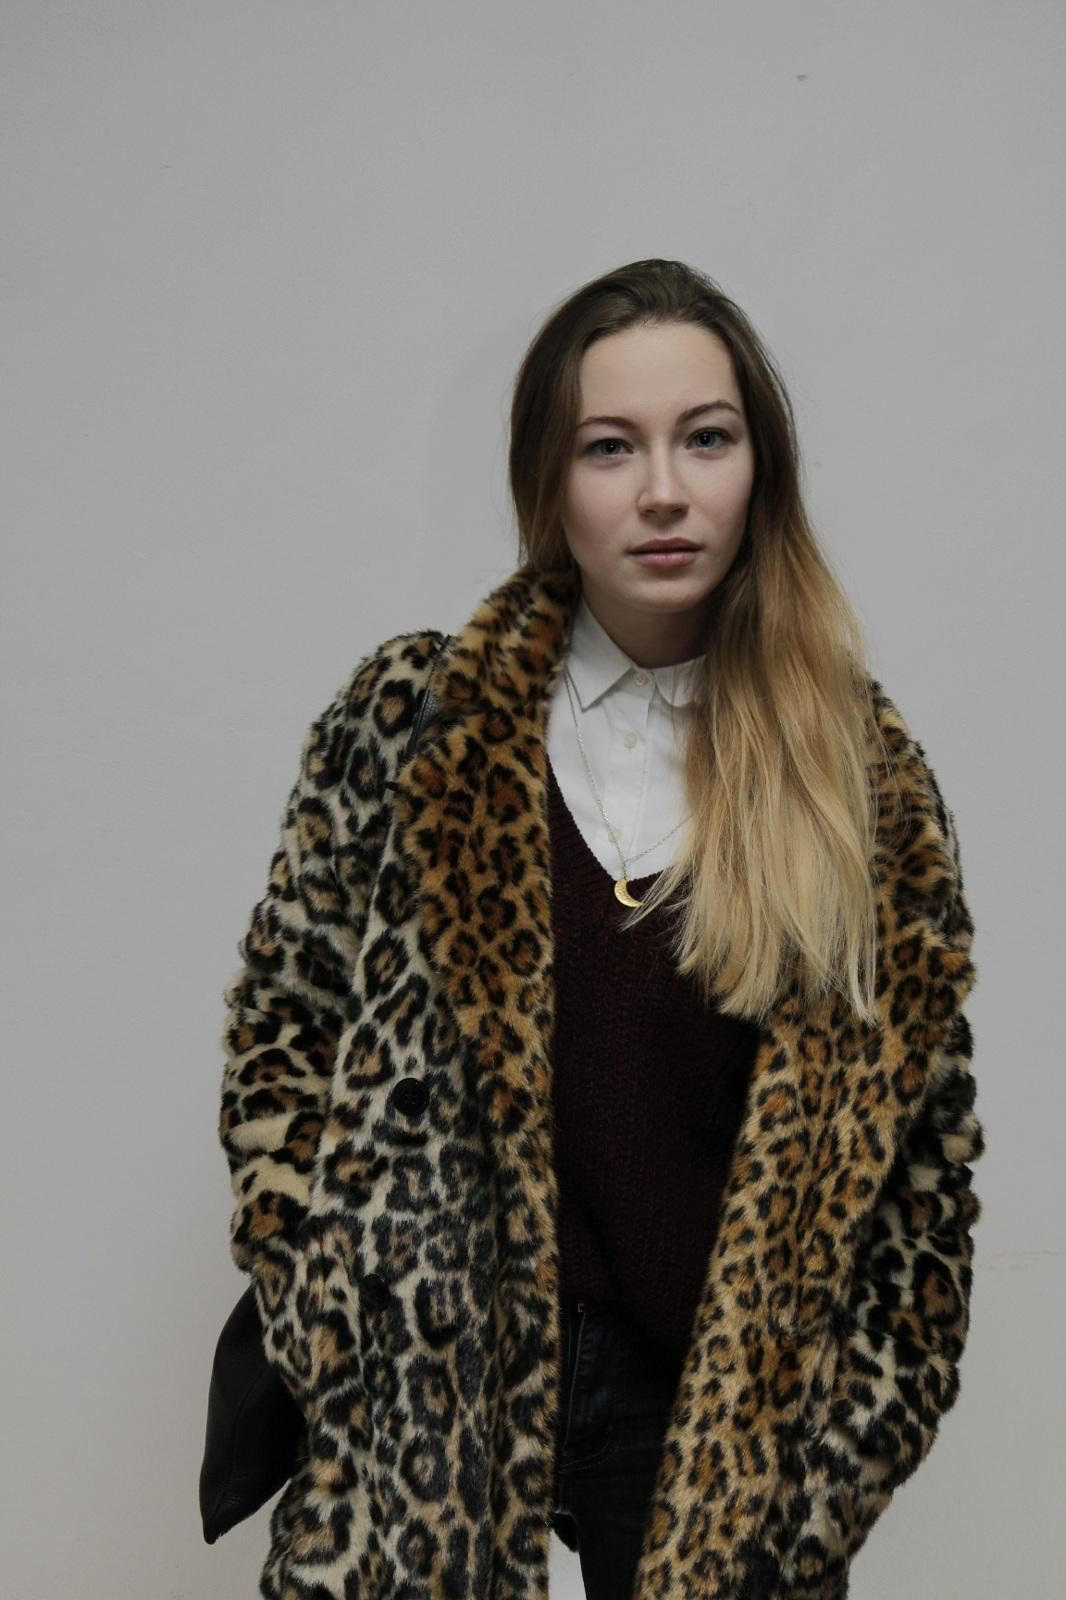 Absolutes lieblingsteil fuer kalte tage fashion outfit letstwashit itpiece fauxfur leopardcoat  6c3dff3f 72aa 4924 9b2b 559d91cb3ae7